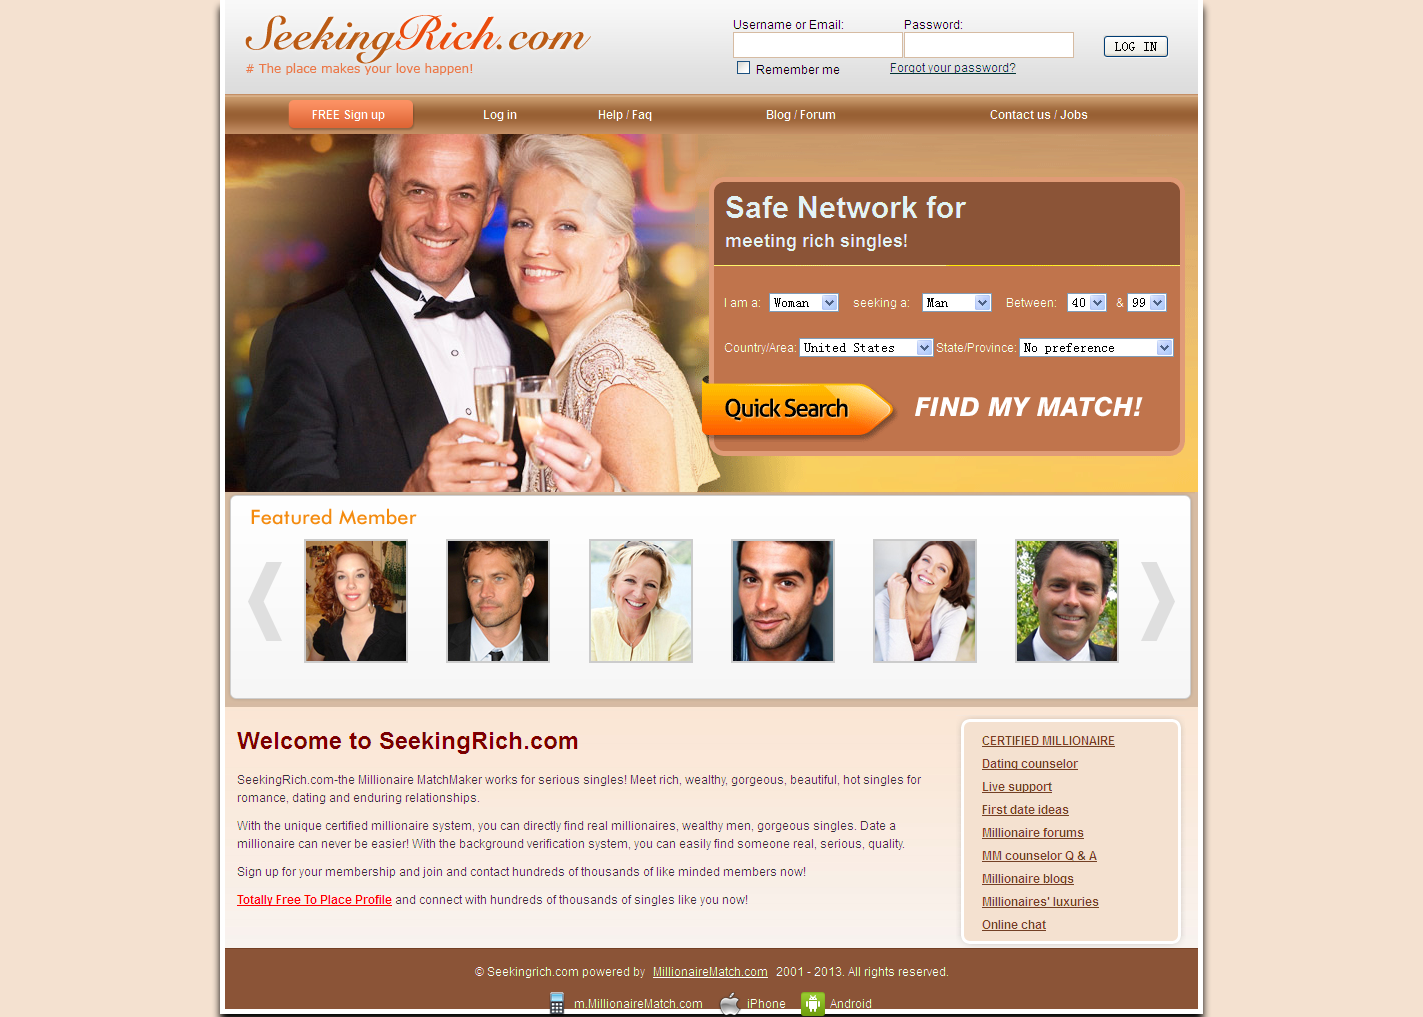 beachport singles dating site Beachport's best 100% free singles dating site meet thousands of singles in beachport with mingle2's free personal ads and chat rooms our network of single men and women in beachport is the perfect place to make friends or find a boyfriend or girlfriend in beachport.